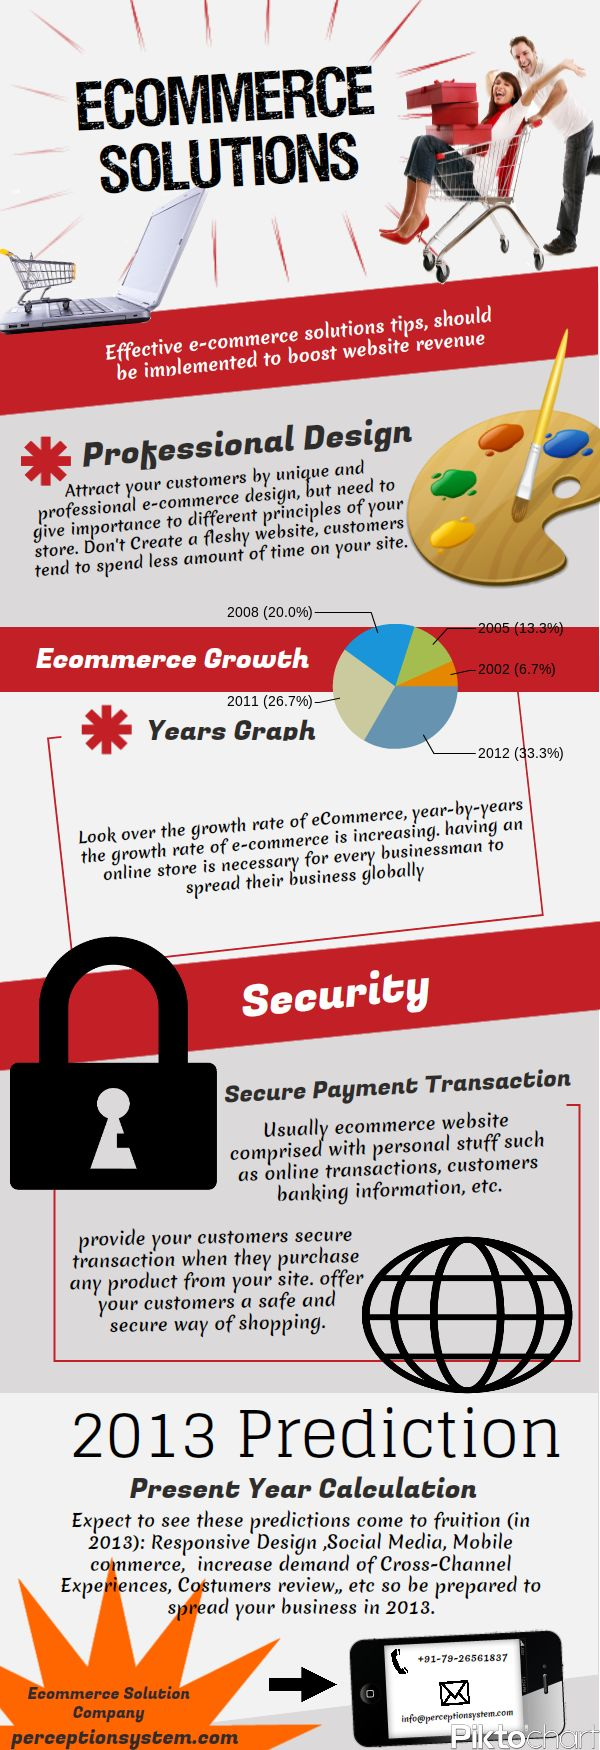 E-commerce Solutions Tips. This infographic handles predictions, with information about what to expect from ecommerce in the year ahead.